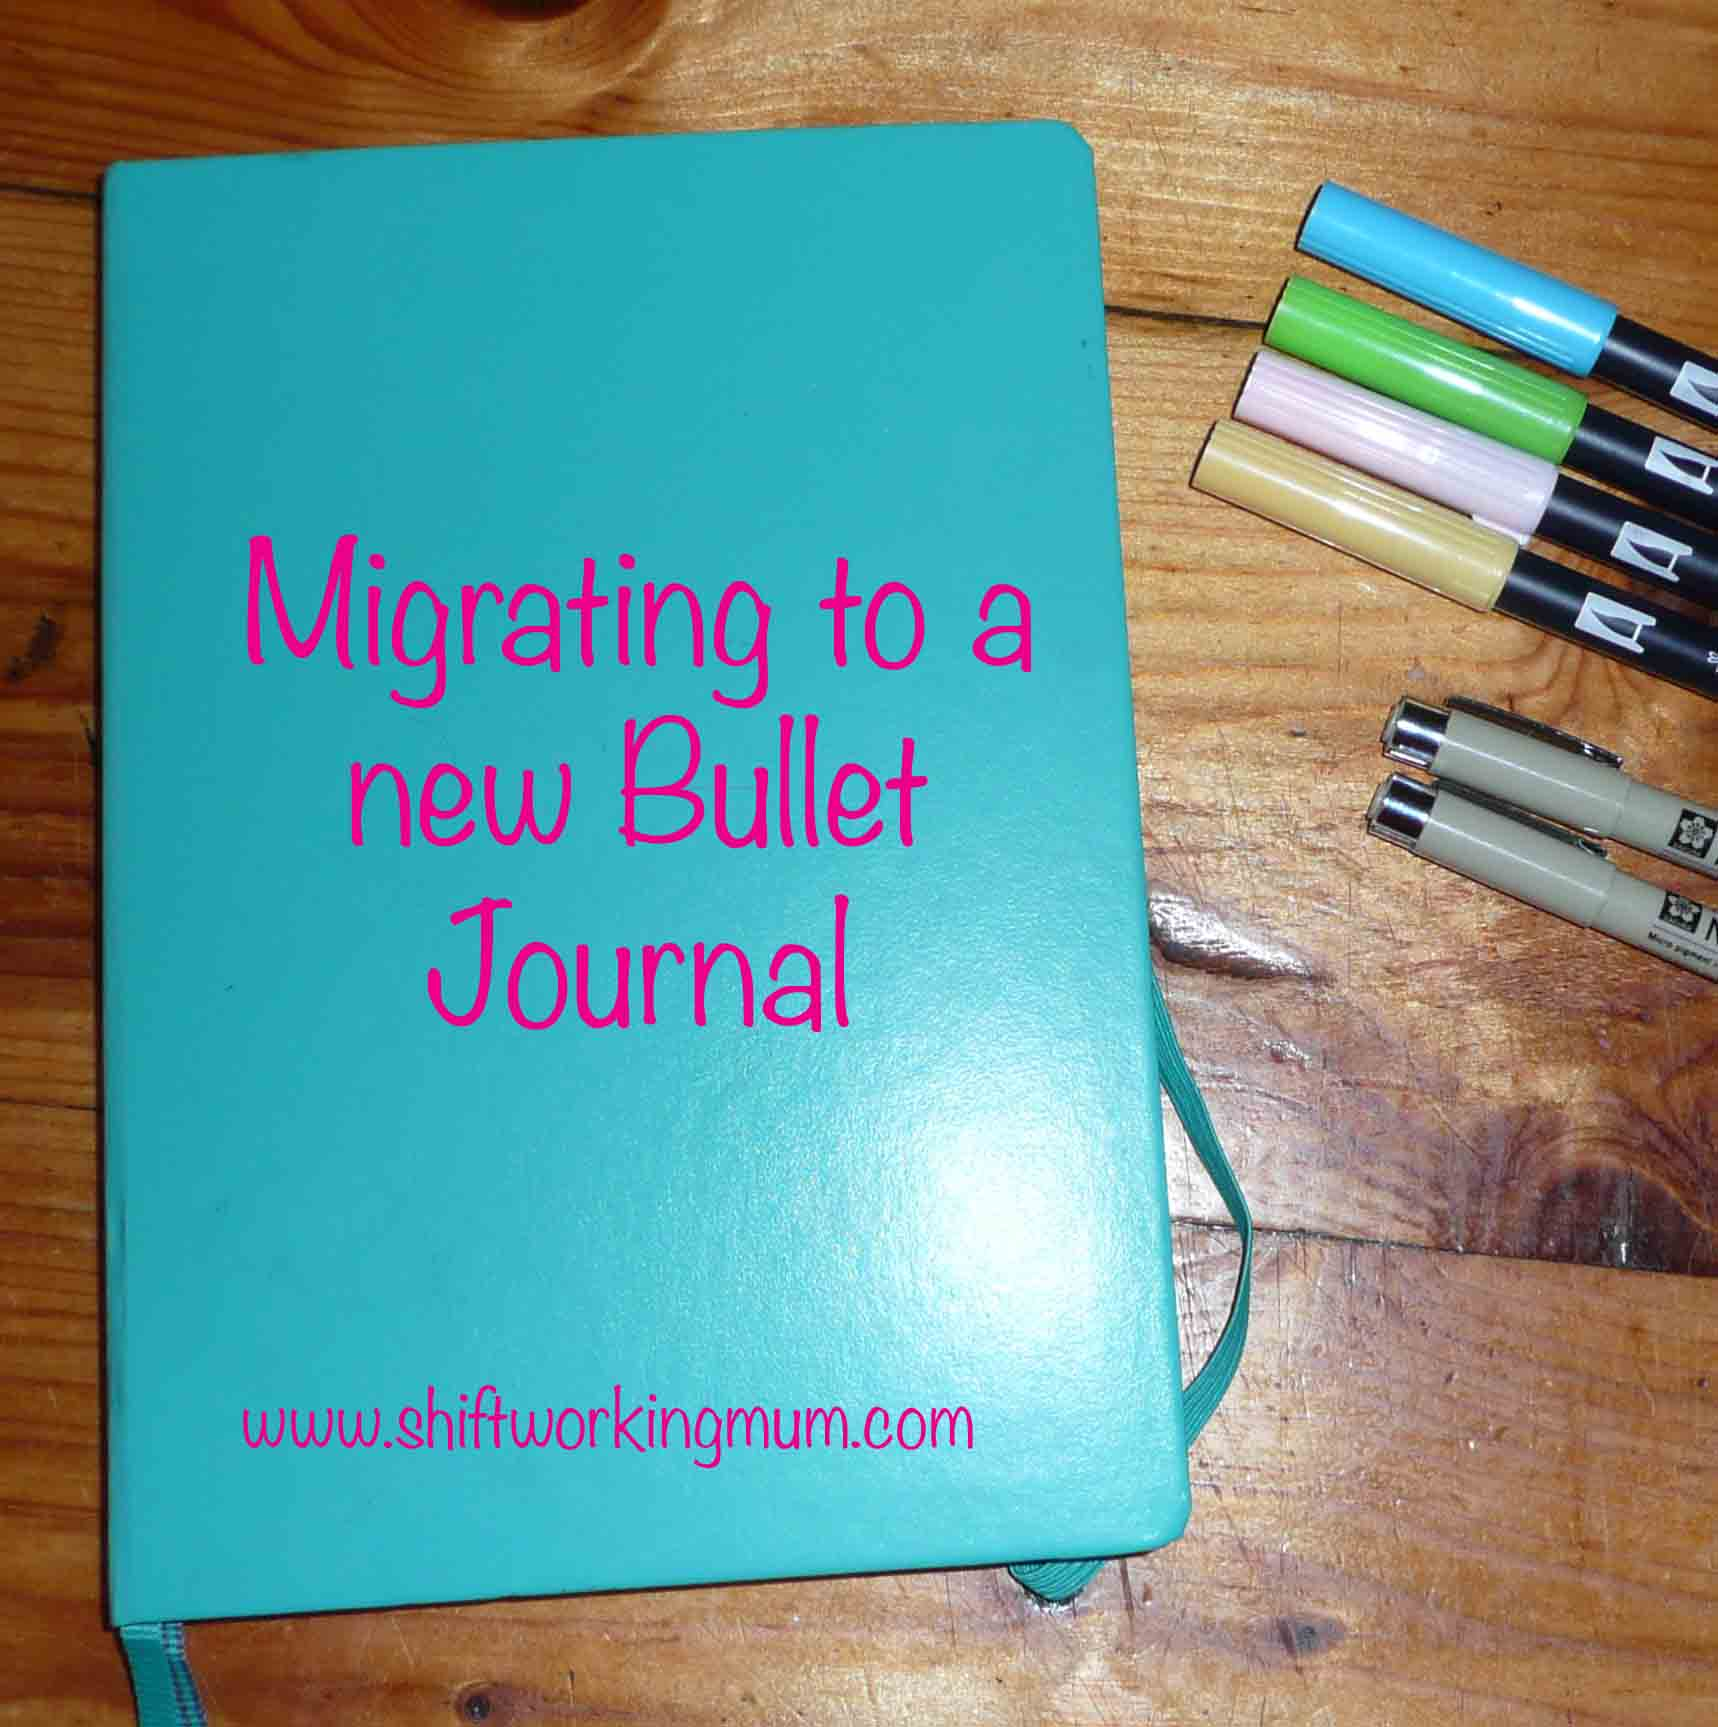 Migrating to a new Bullet Journal